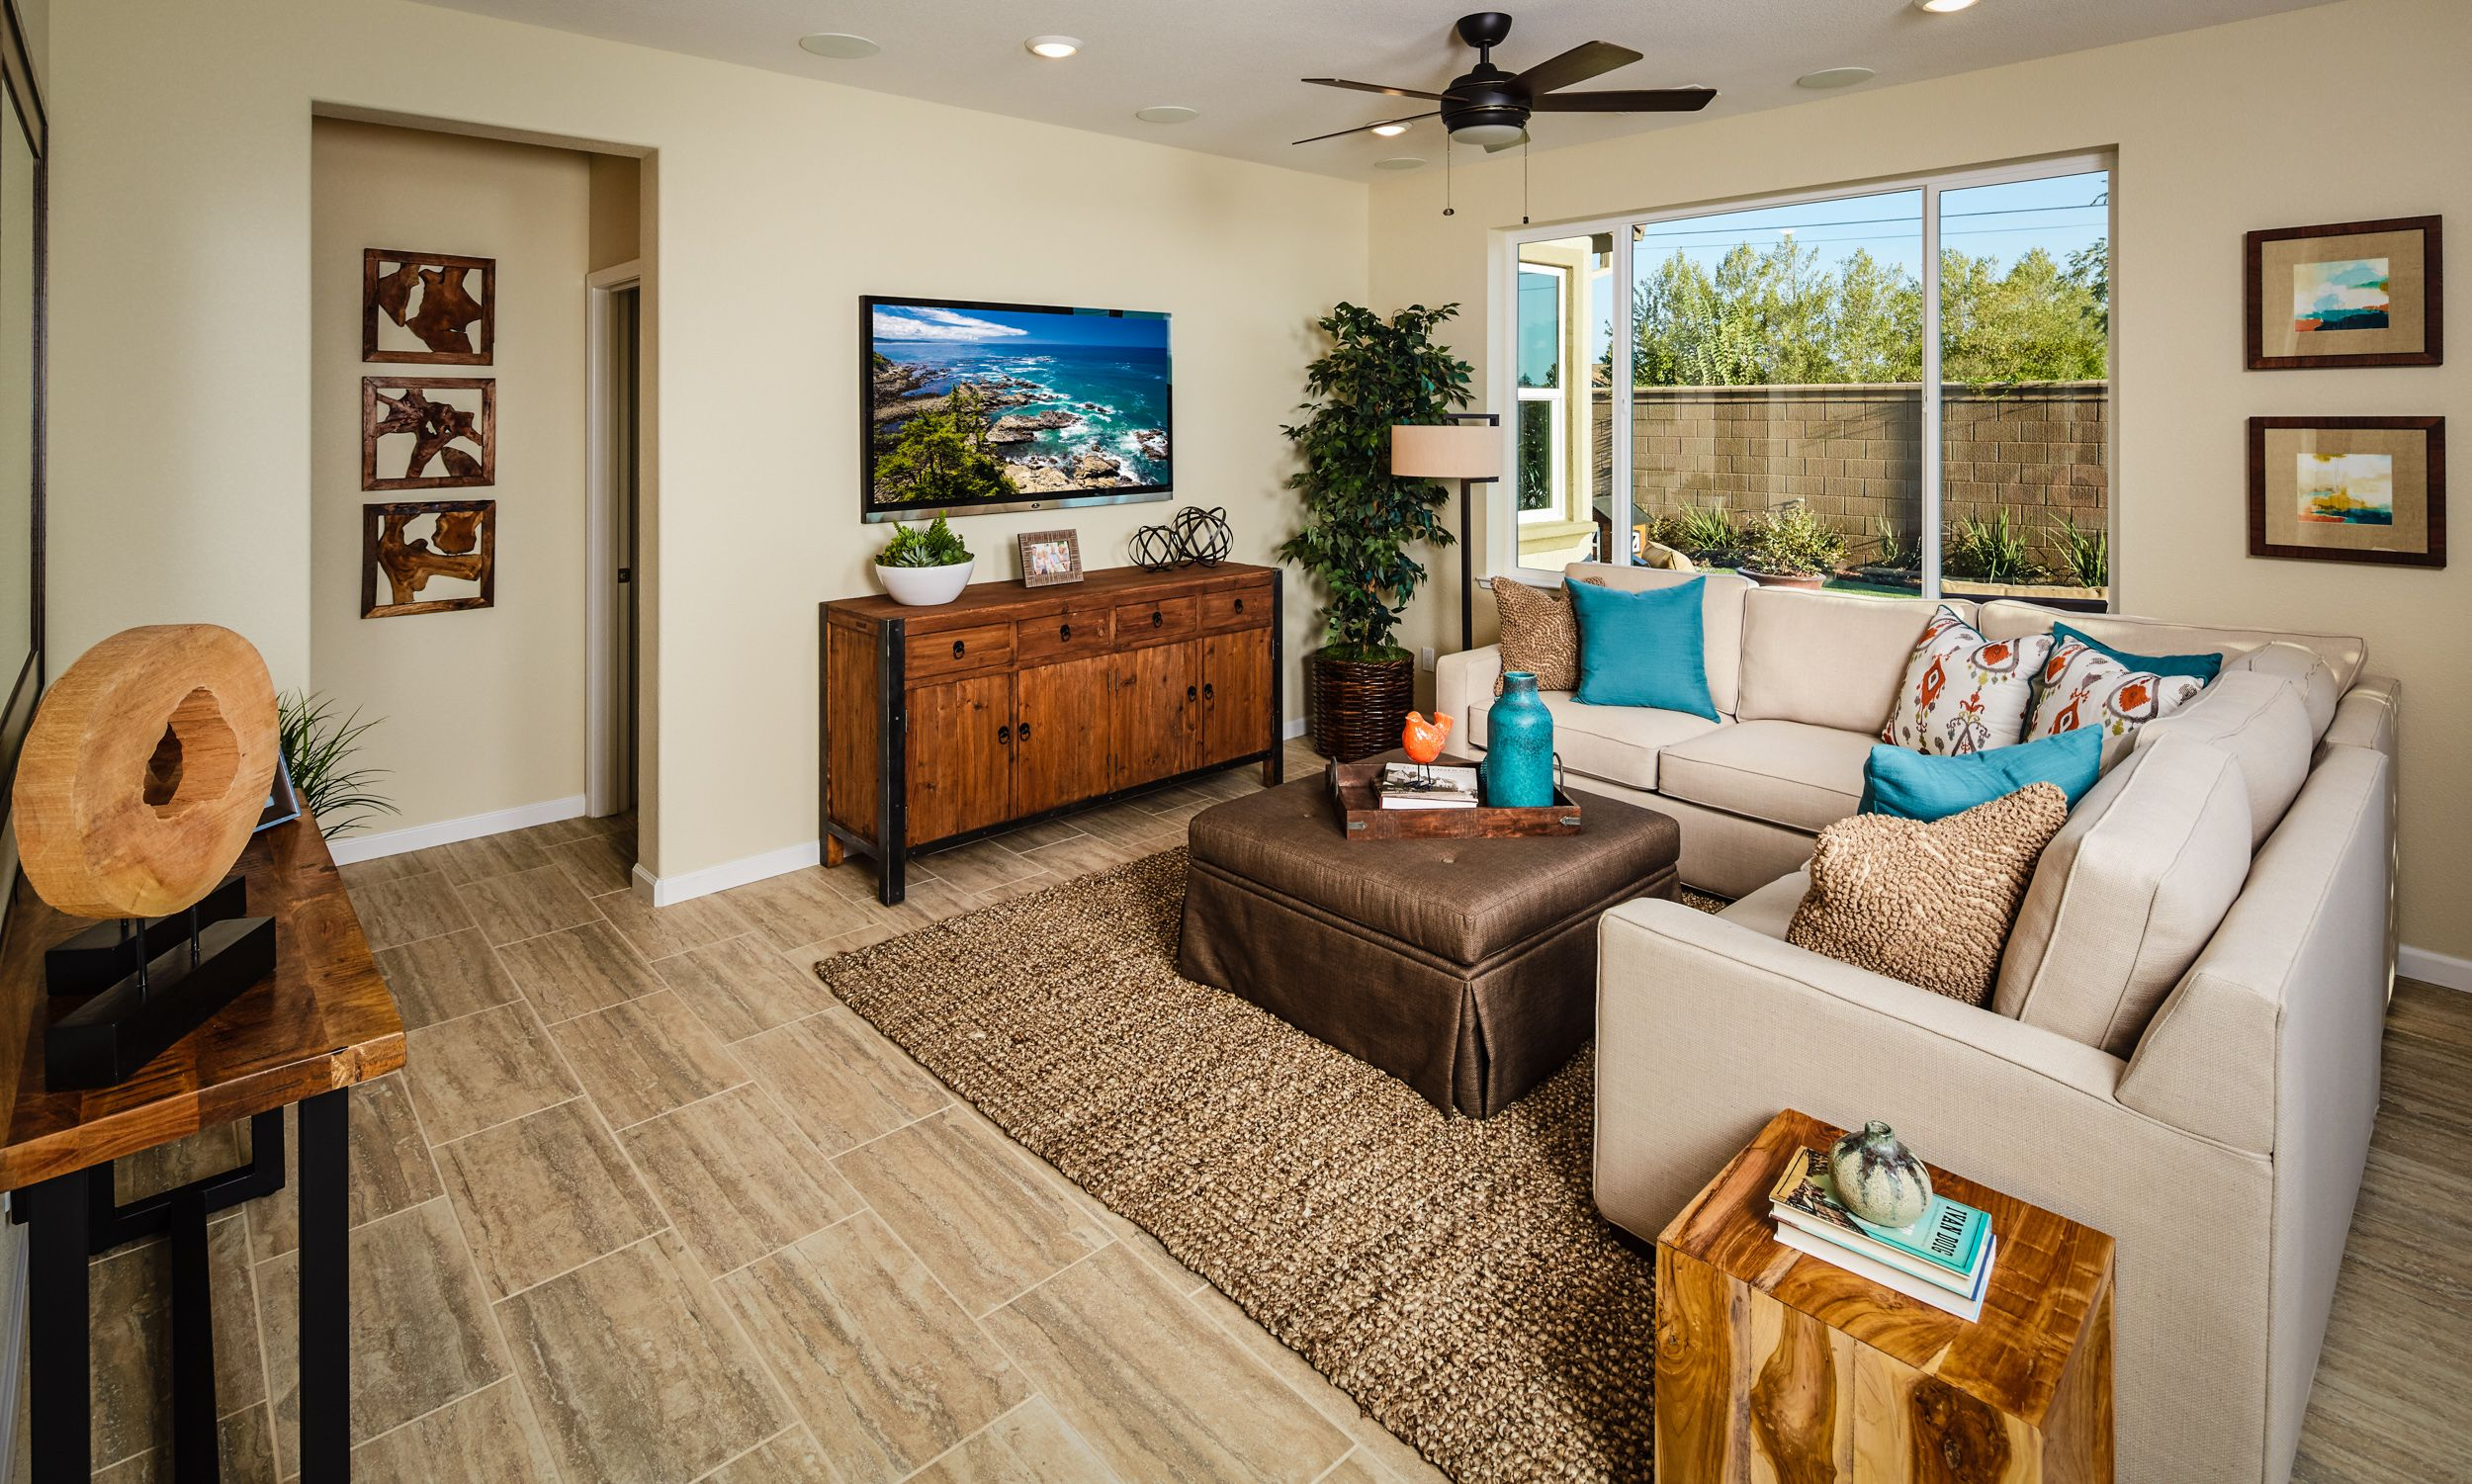 Gather With Loved Ones In A New Home You Adore Sacramento Sacrealestate Californiahomes Home Taylor Morrison Homes California Homes